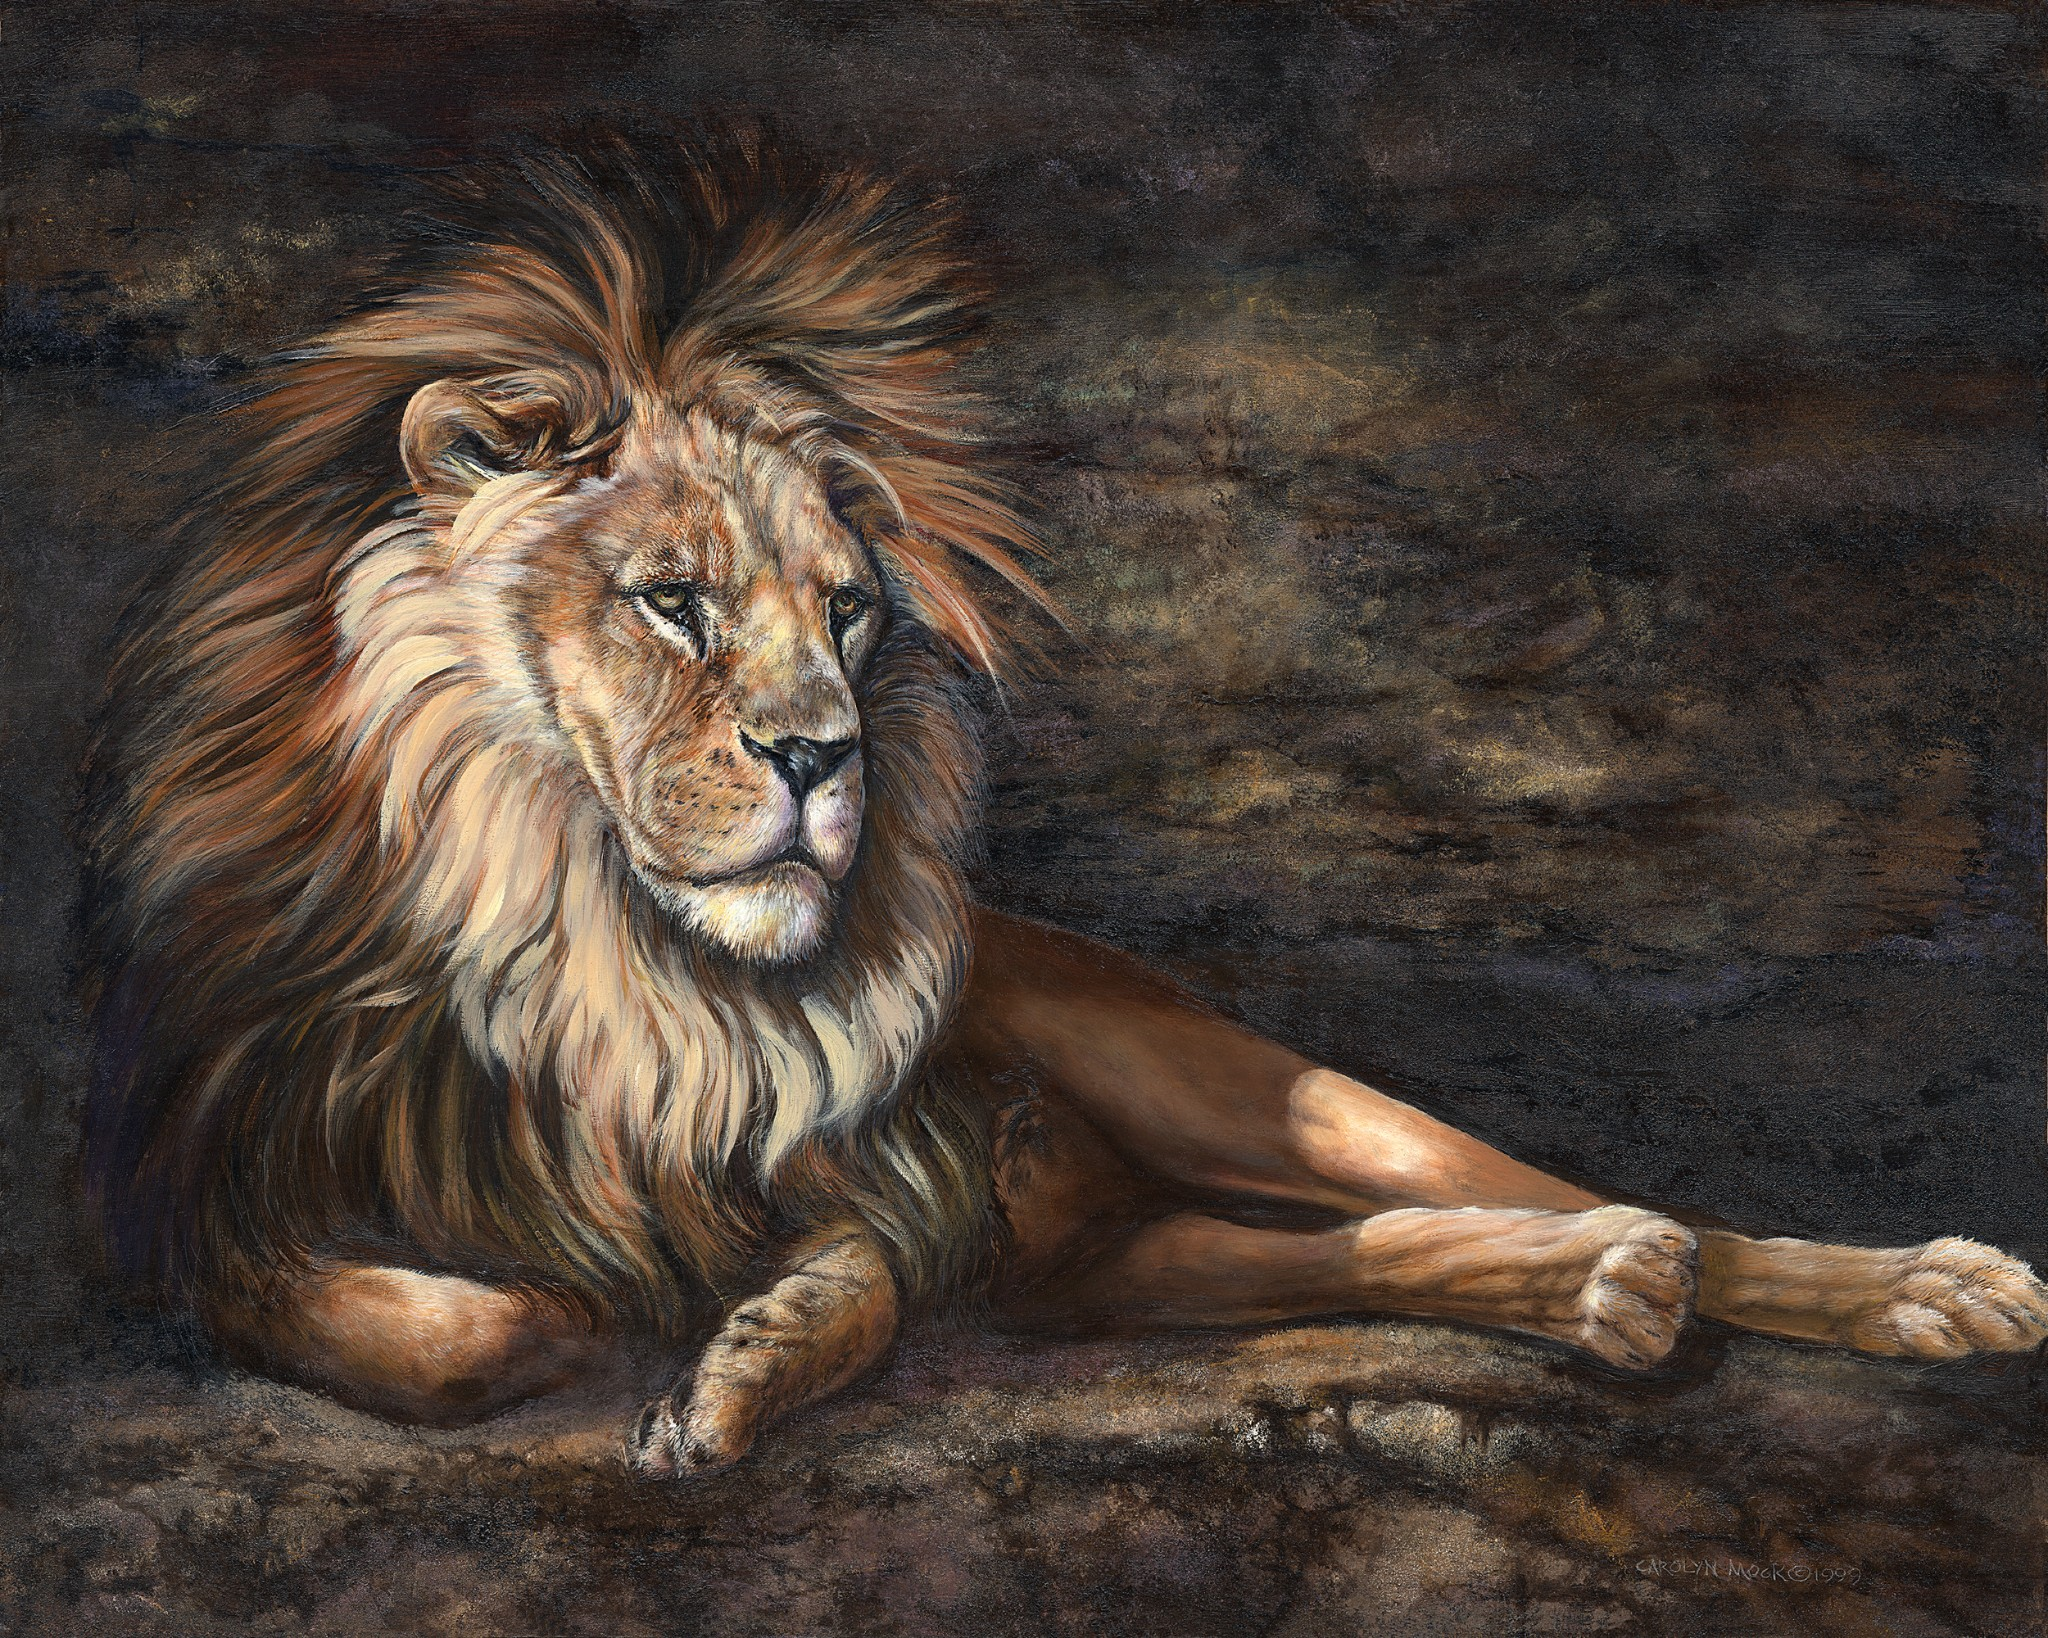 A lion rests after a long day